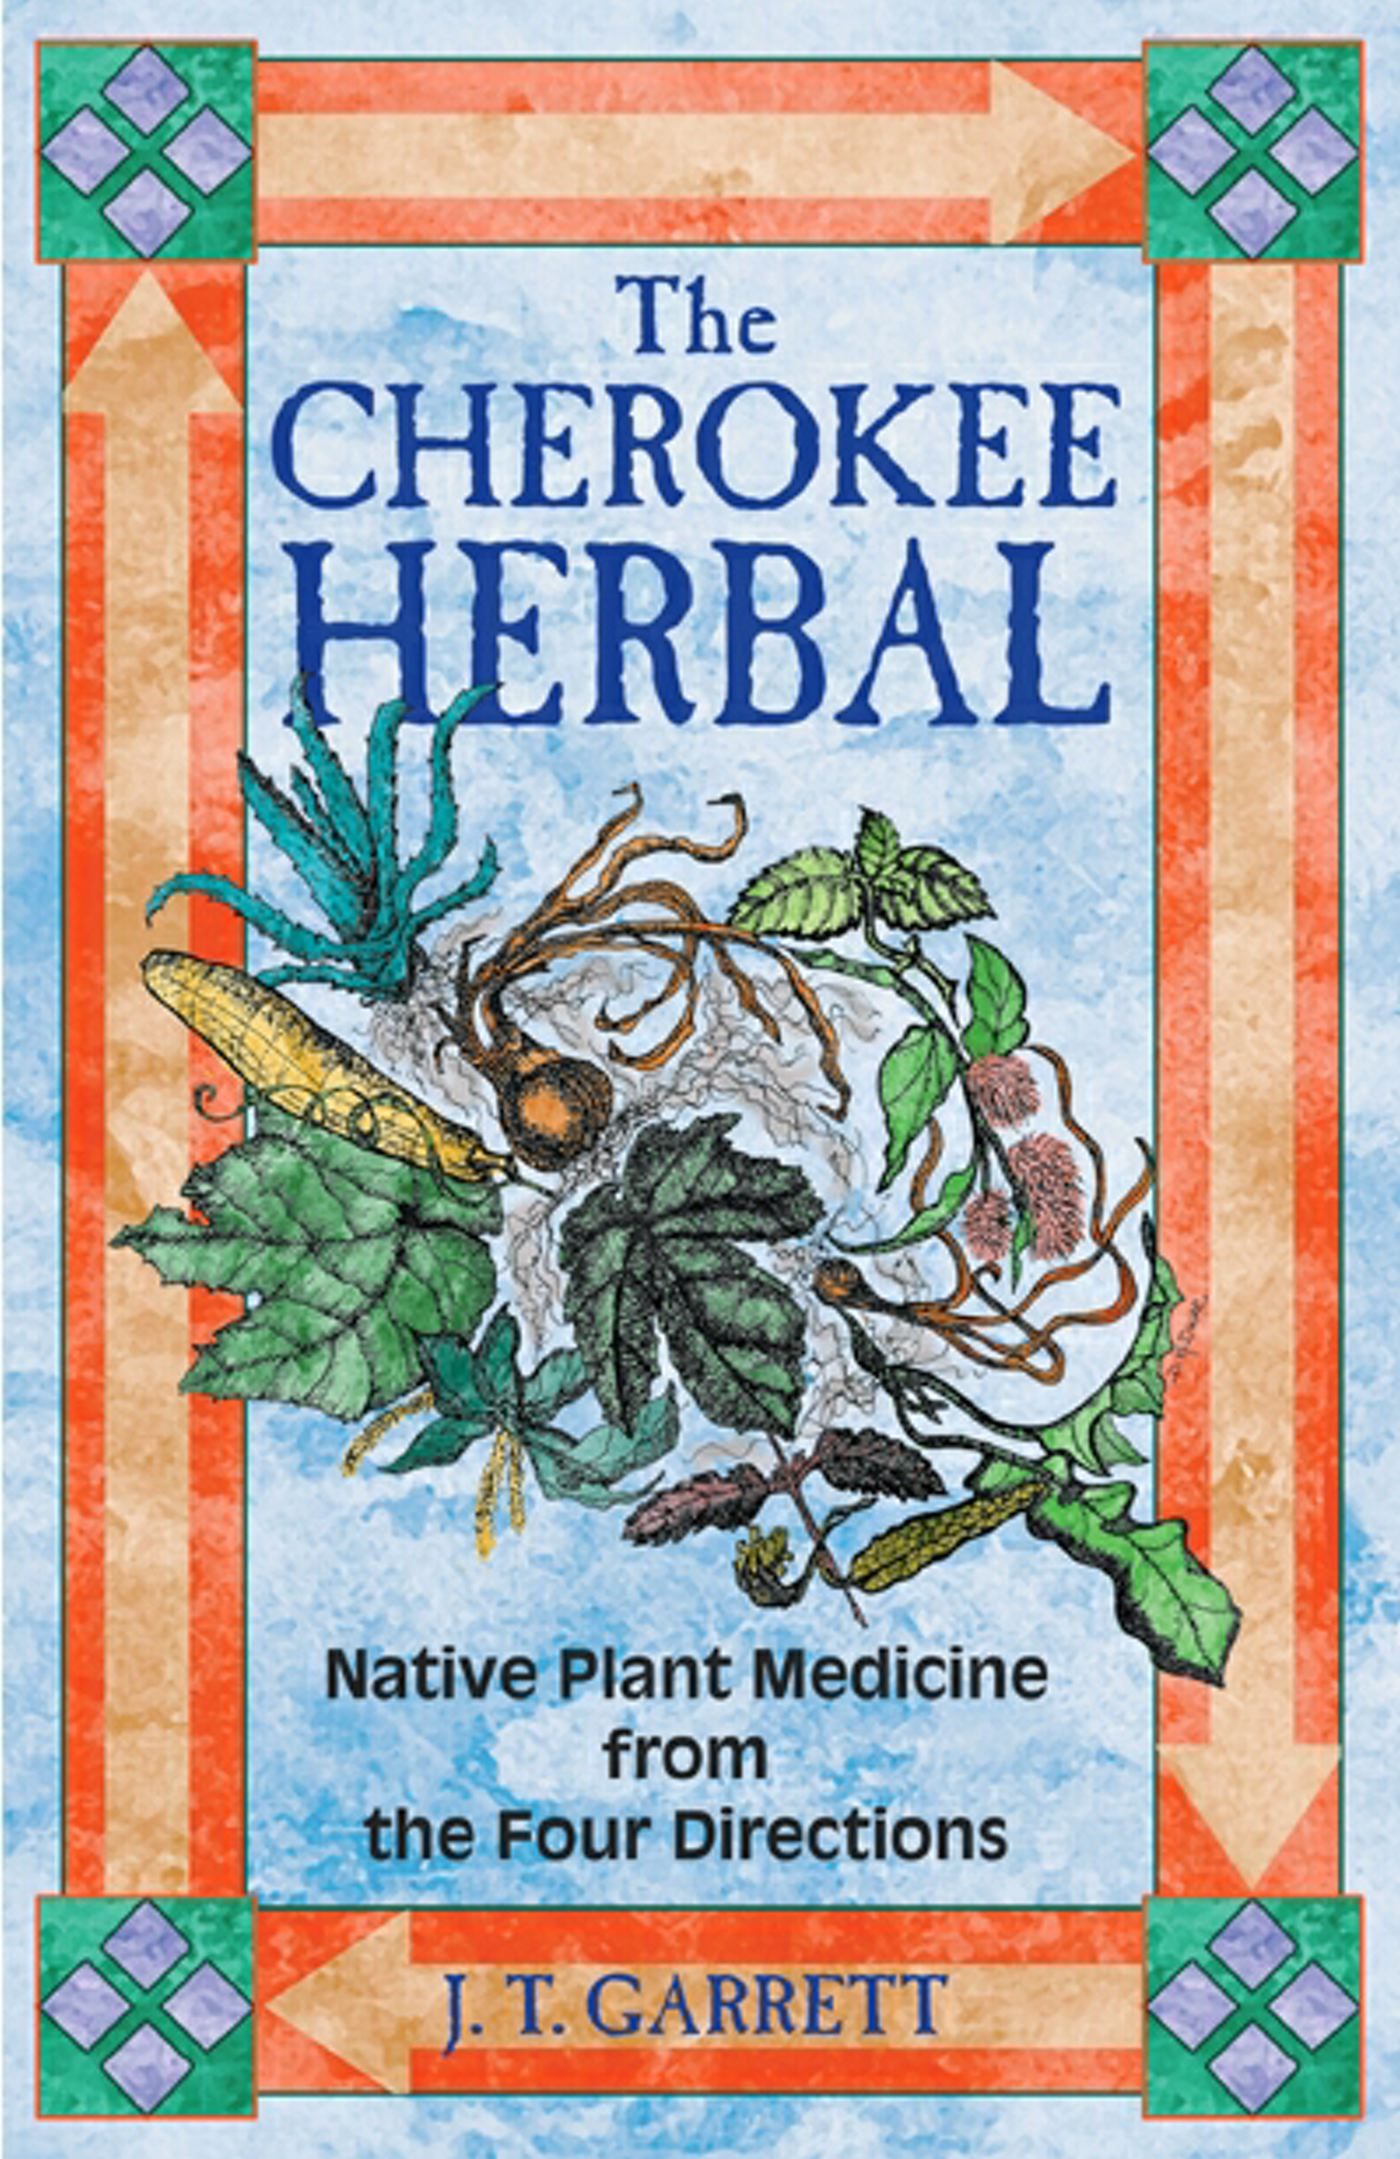 The cherokee herbal 9781879181960 hr